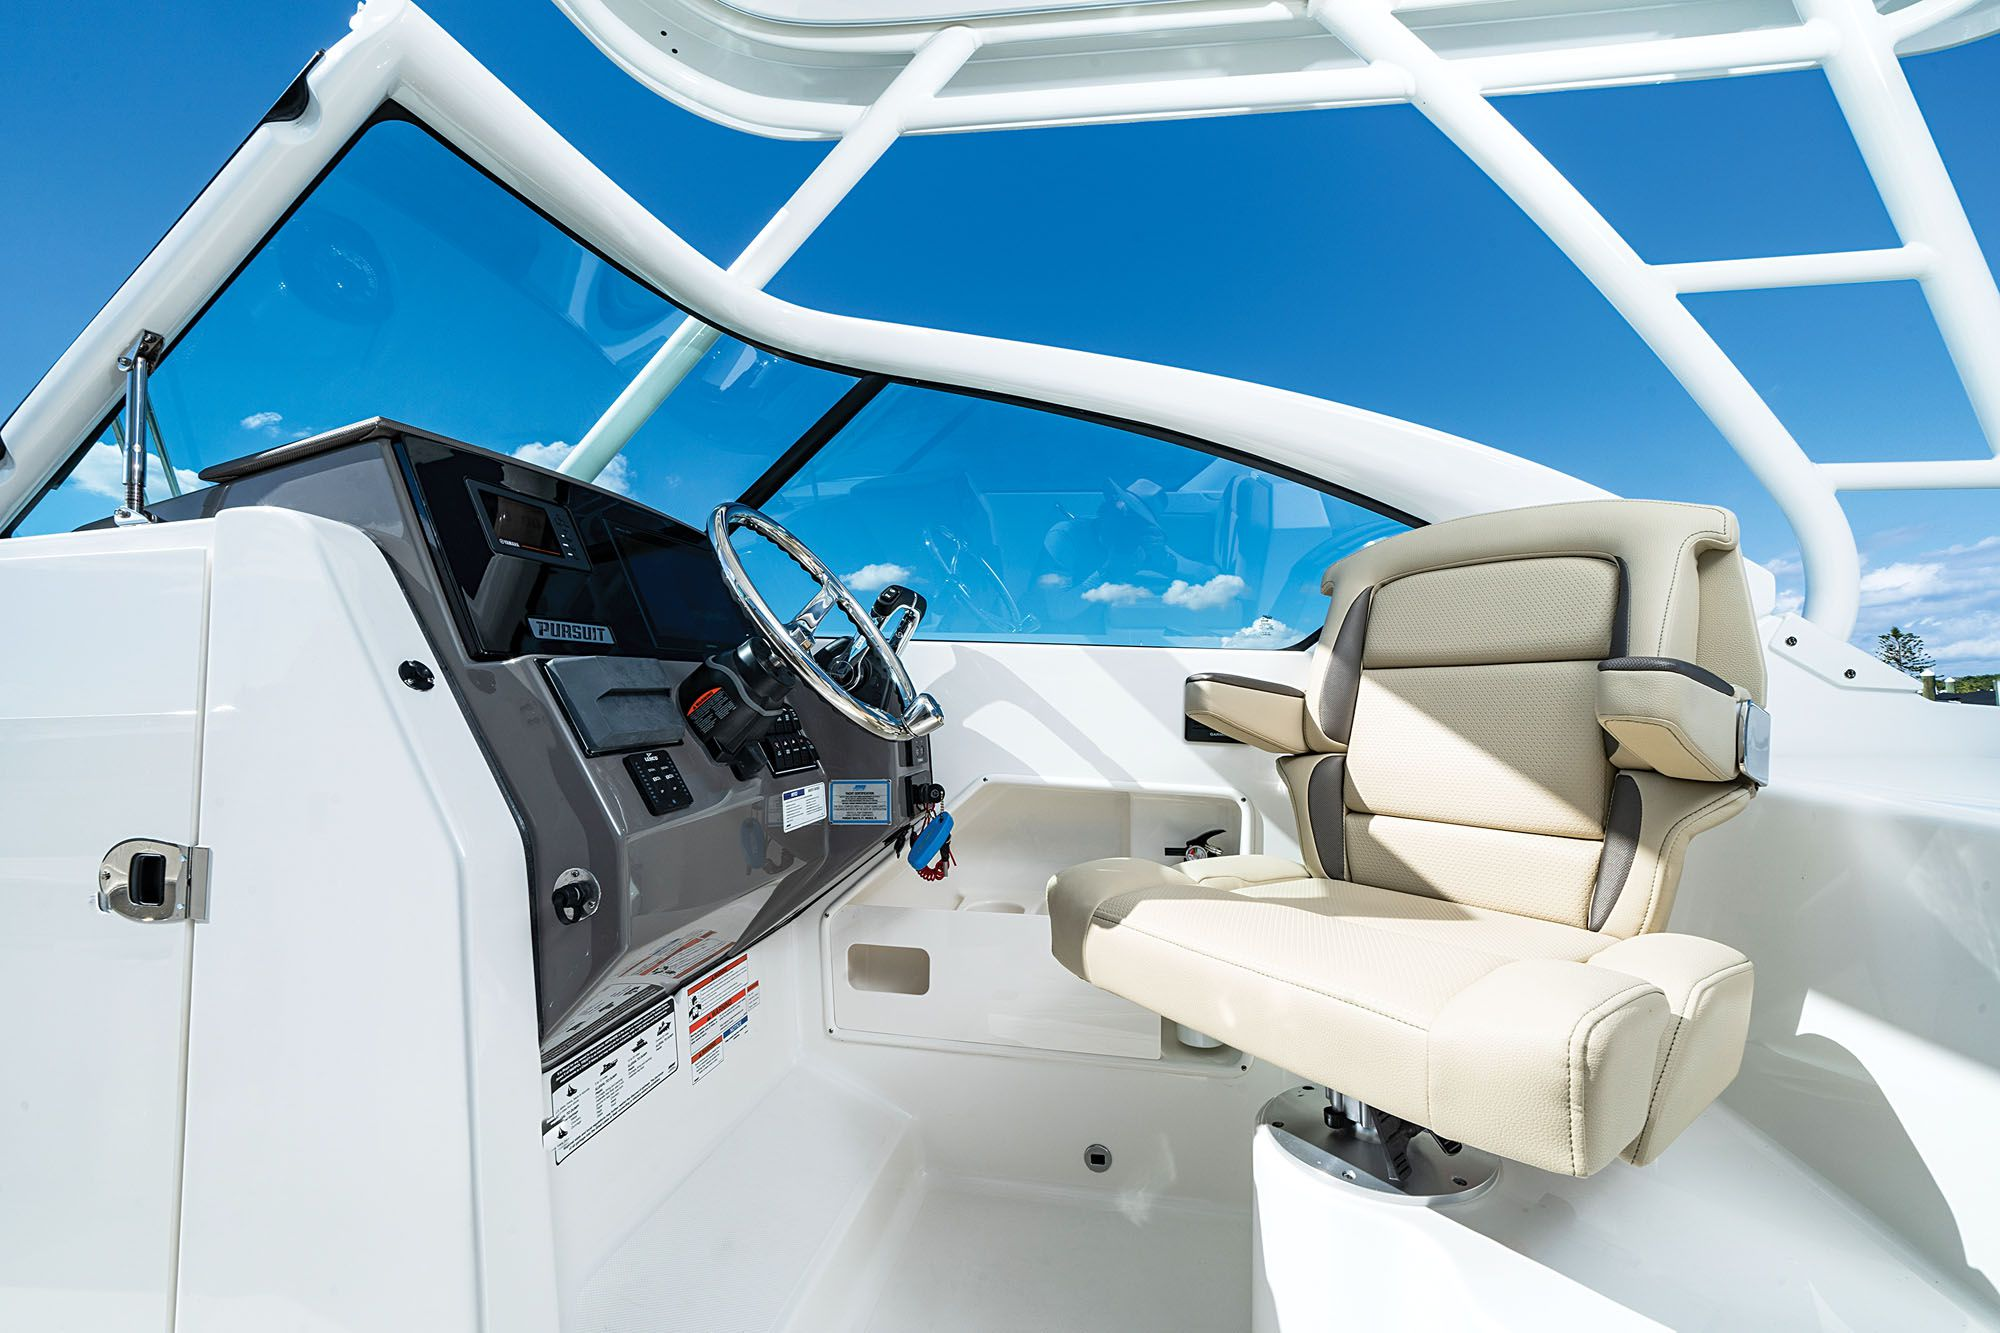 The helm seat swivels for easier interaction with the crew.